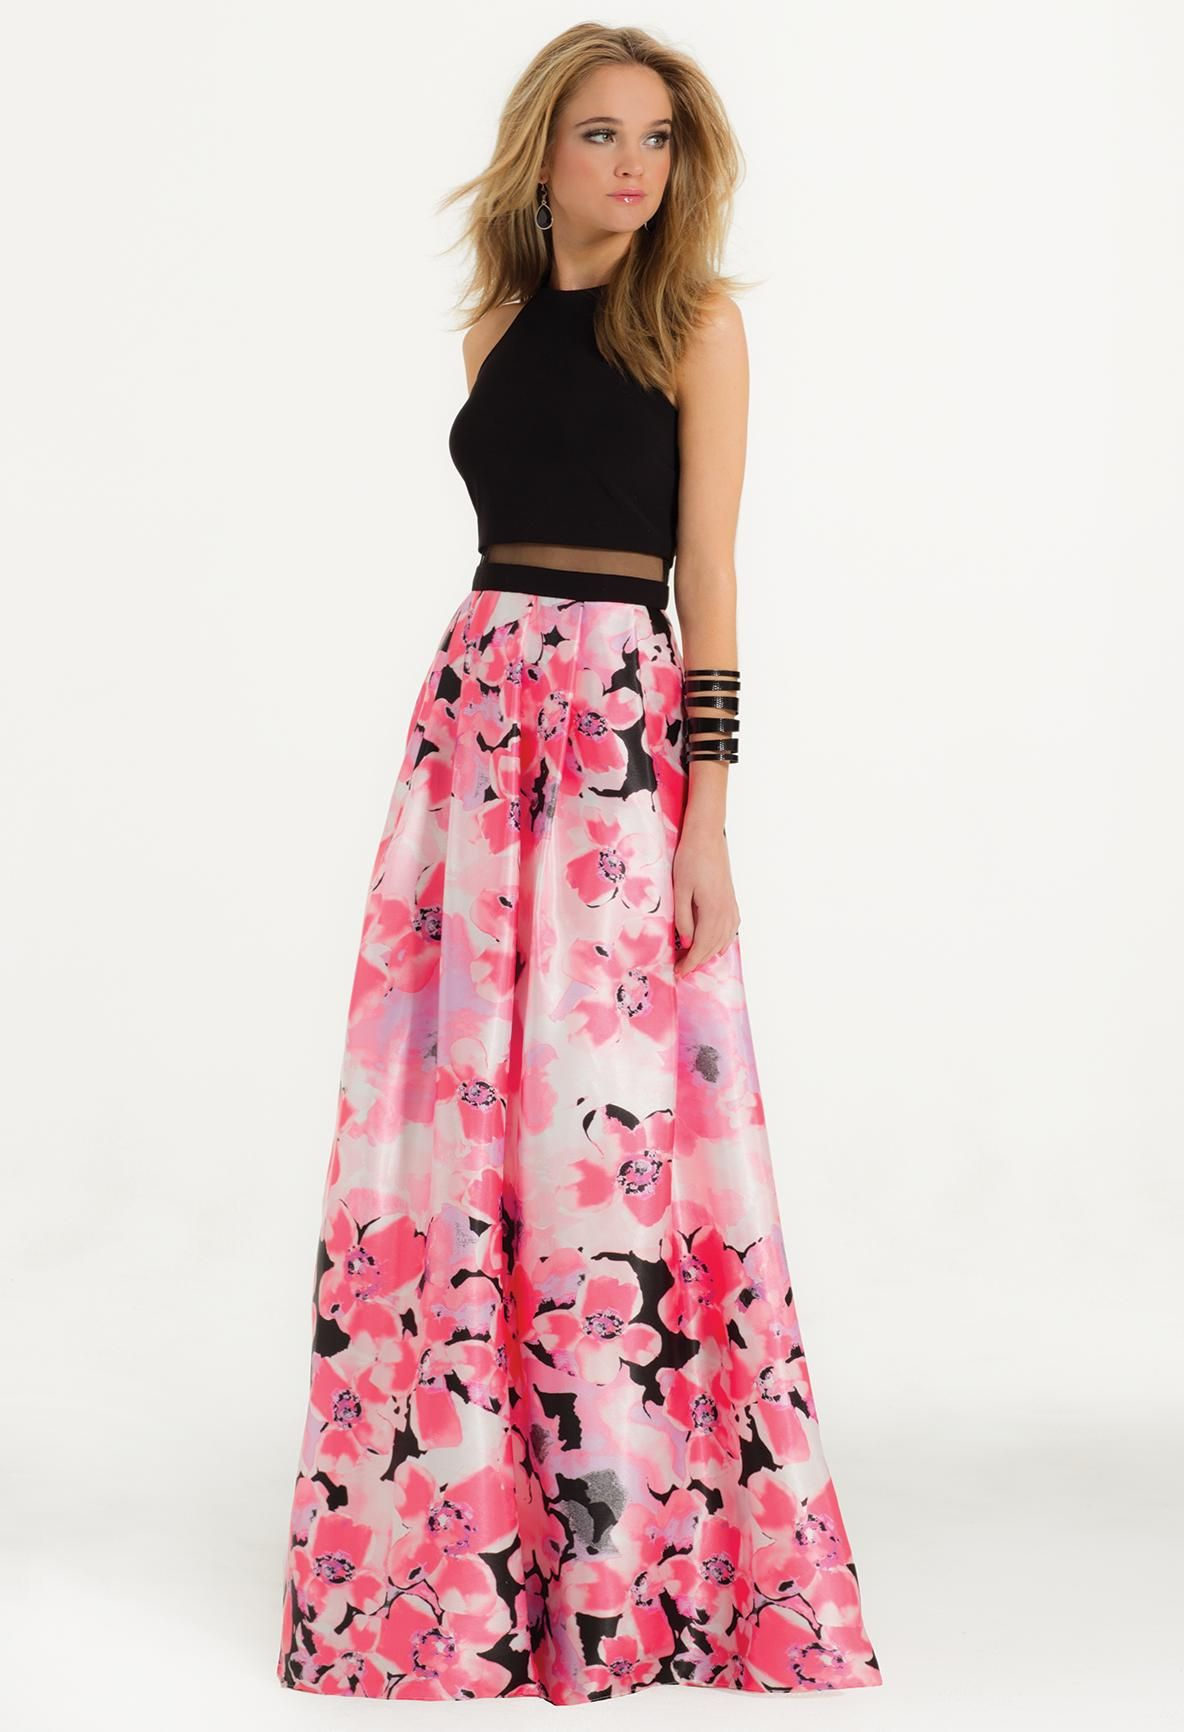 Floral Print Prom Dress for Prom 2016 #camillelavie #CLVprom ...